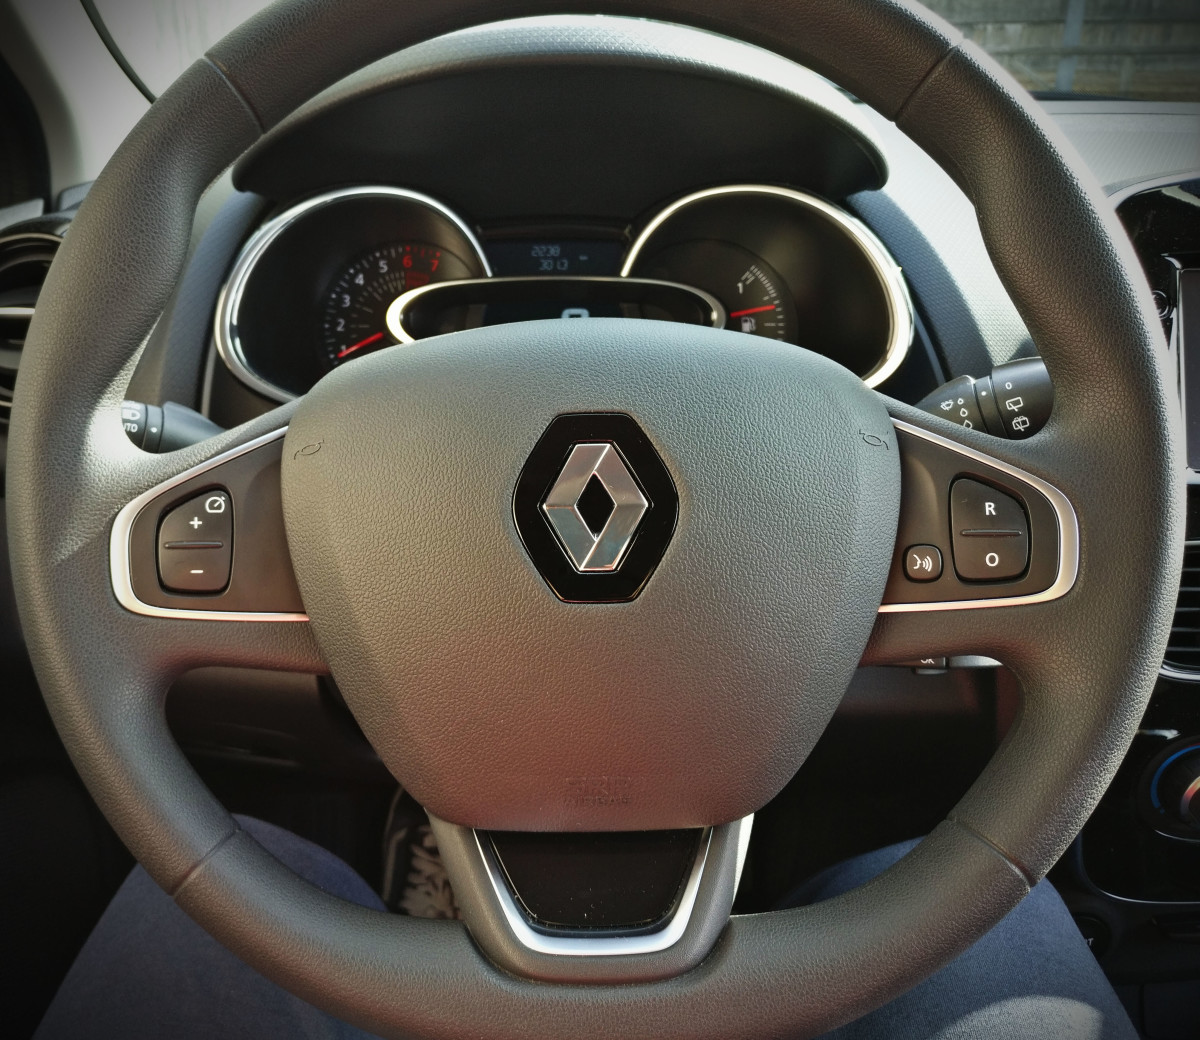 The steering wheel has a nice grippy texture and it's very ergonomic. Notice the cruise control buttons on the spokes.